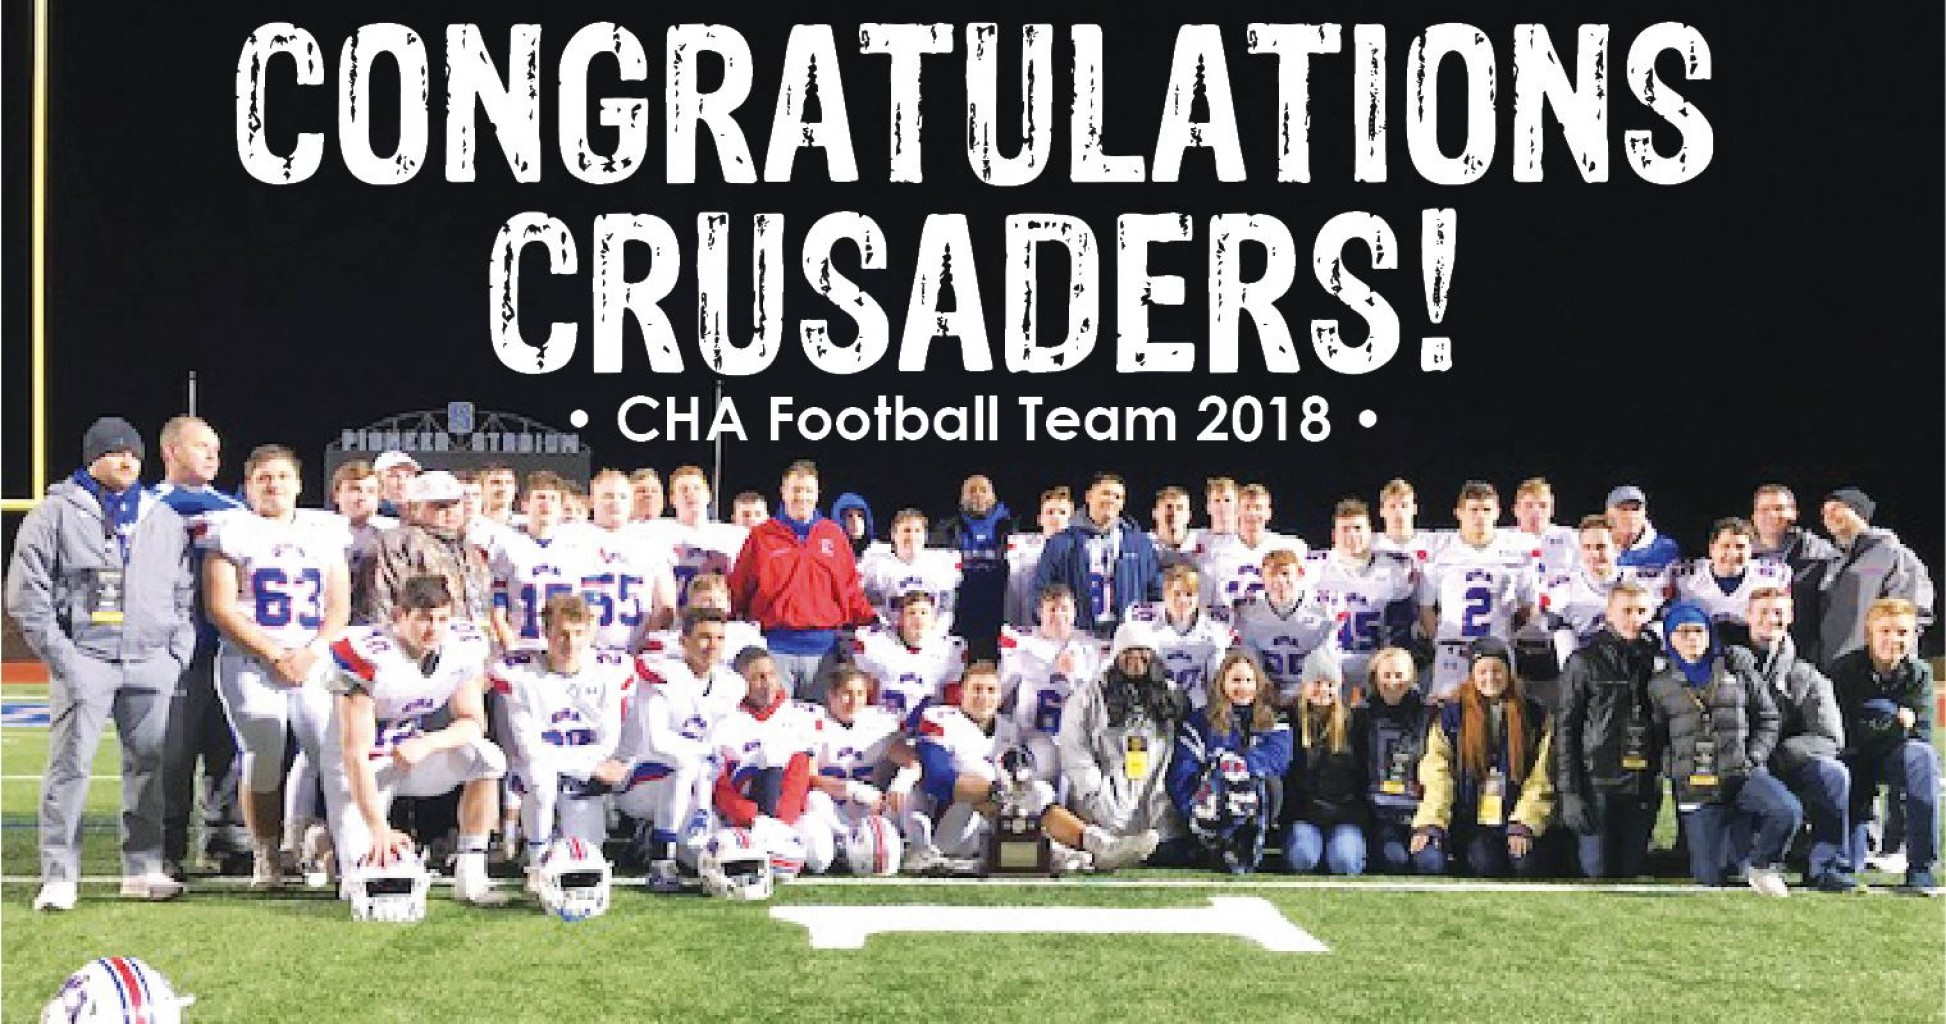 Outstanding football season for CRUSADERS